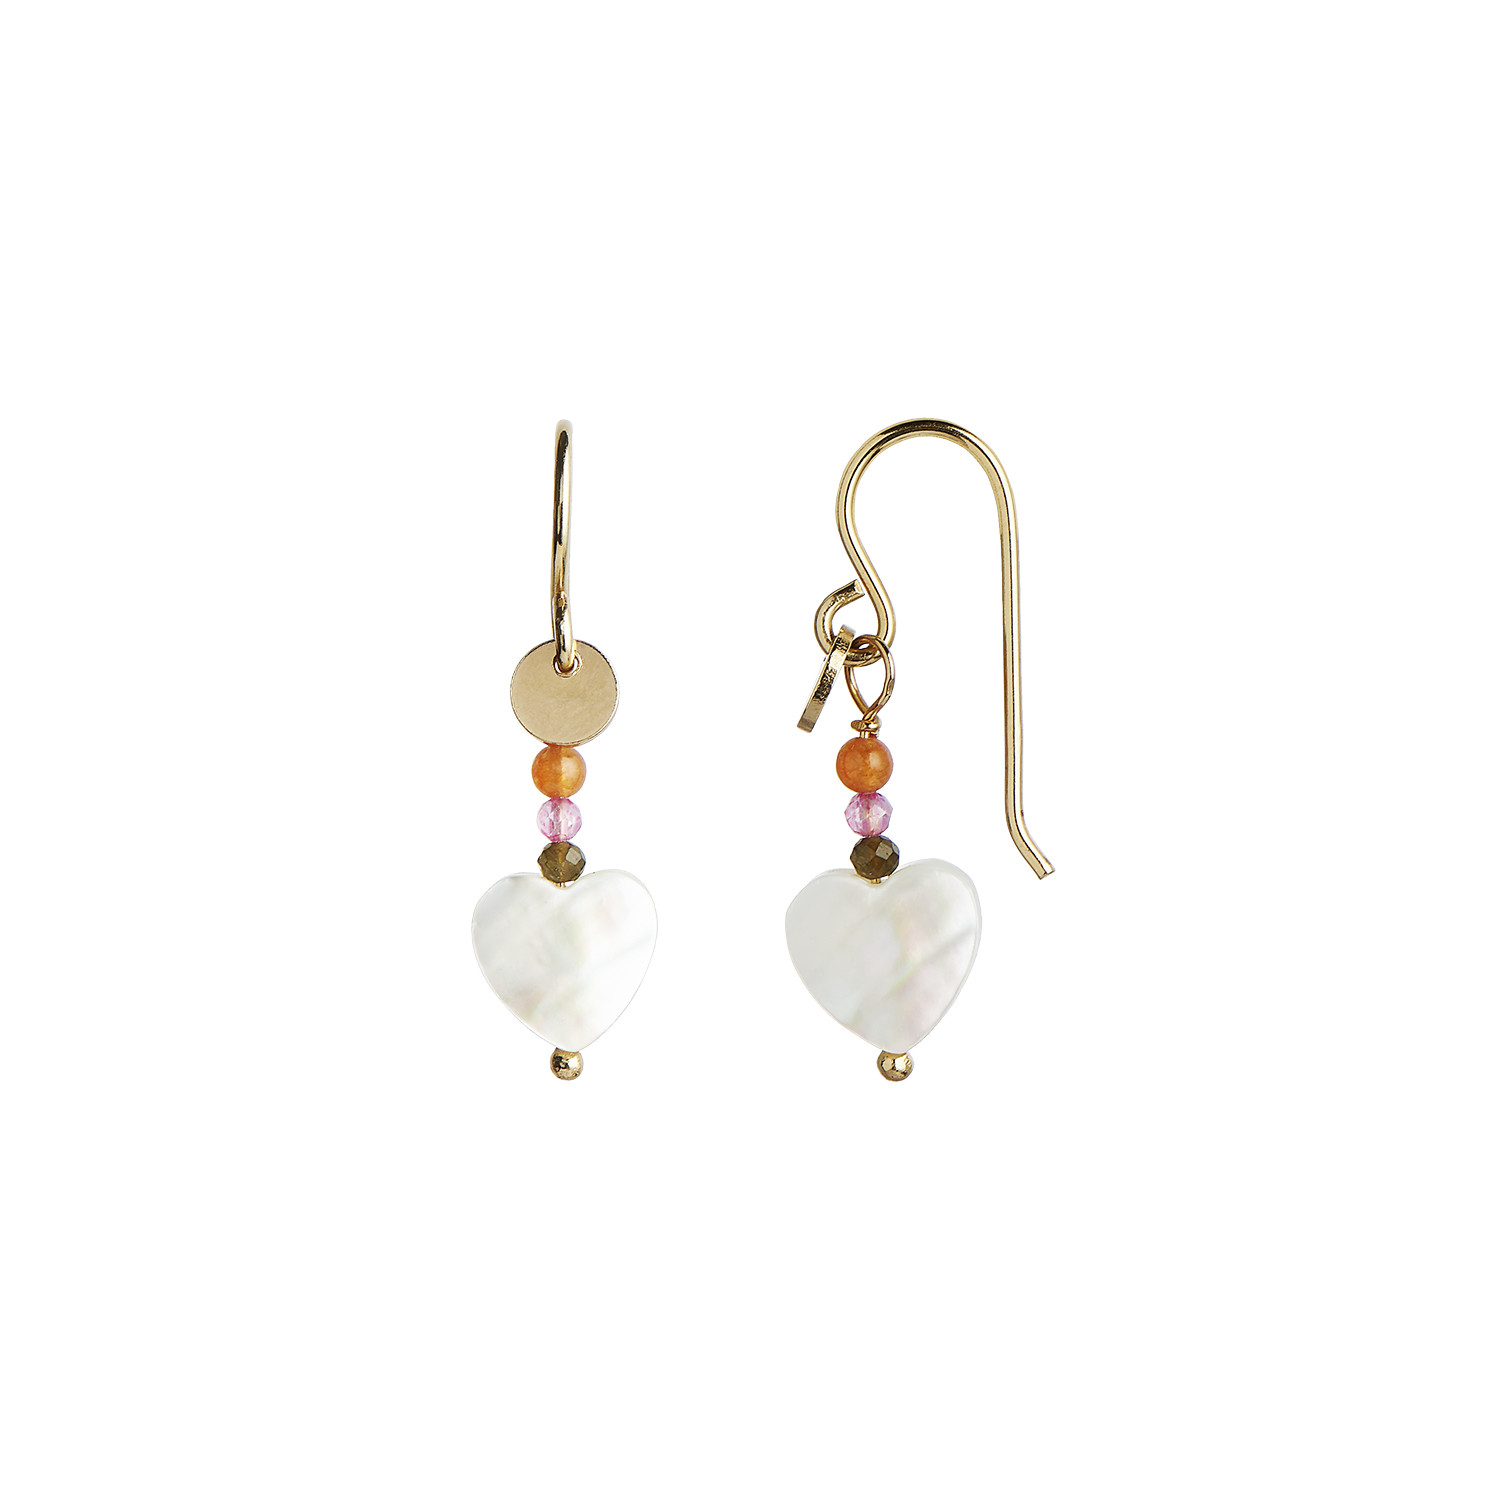 Love Heart Earring Gold with Gemstones - Pastel Coral Mix